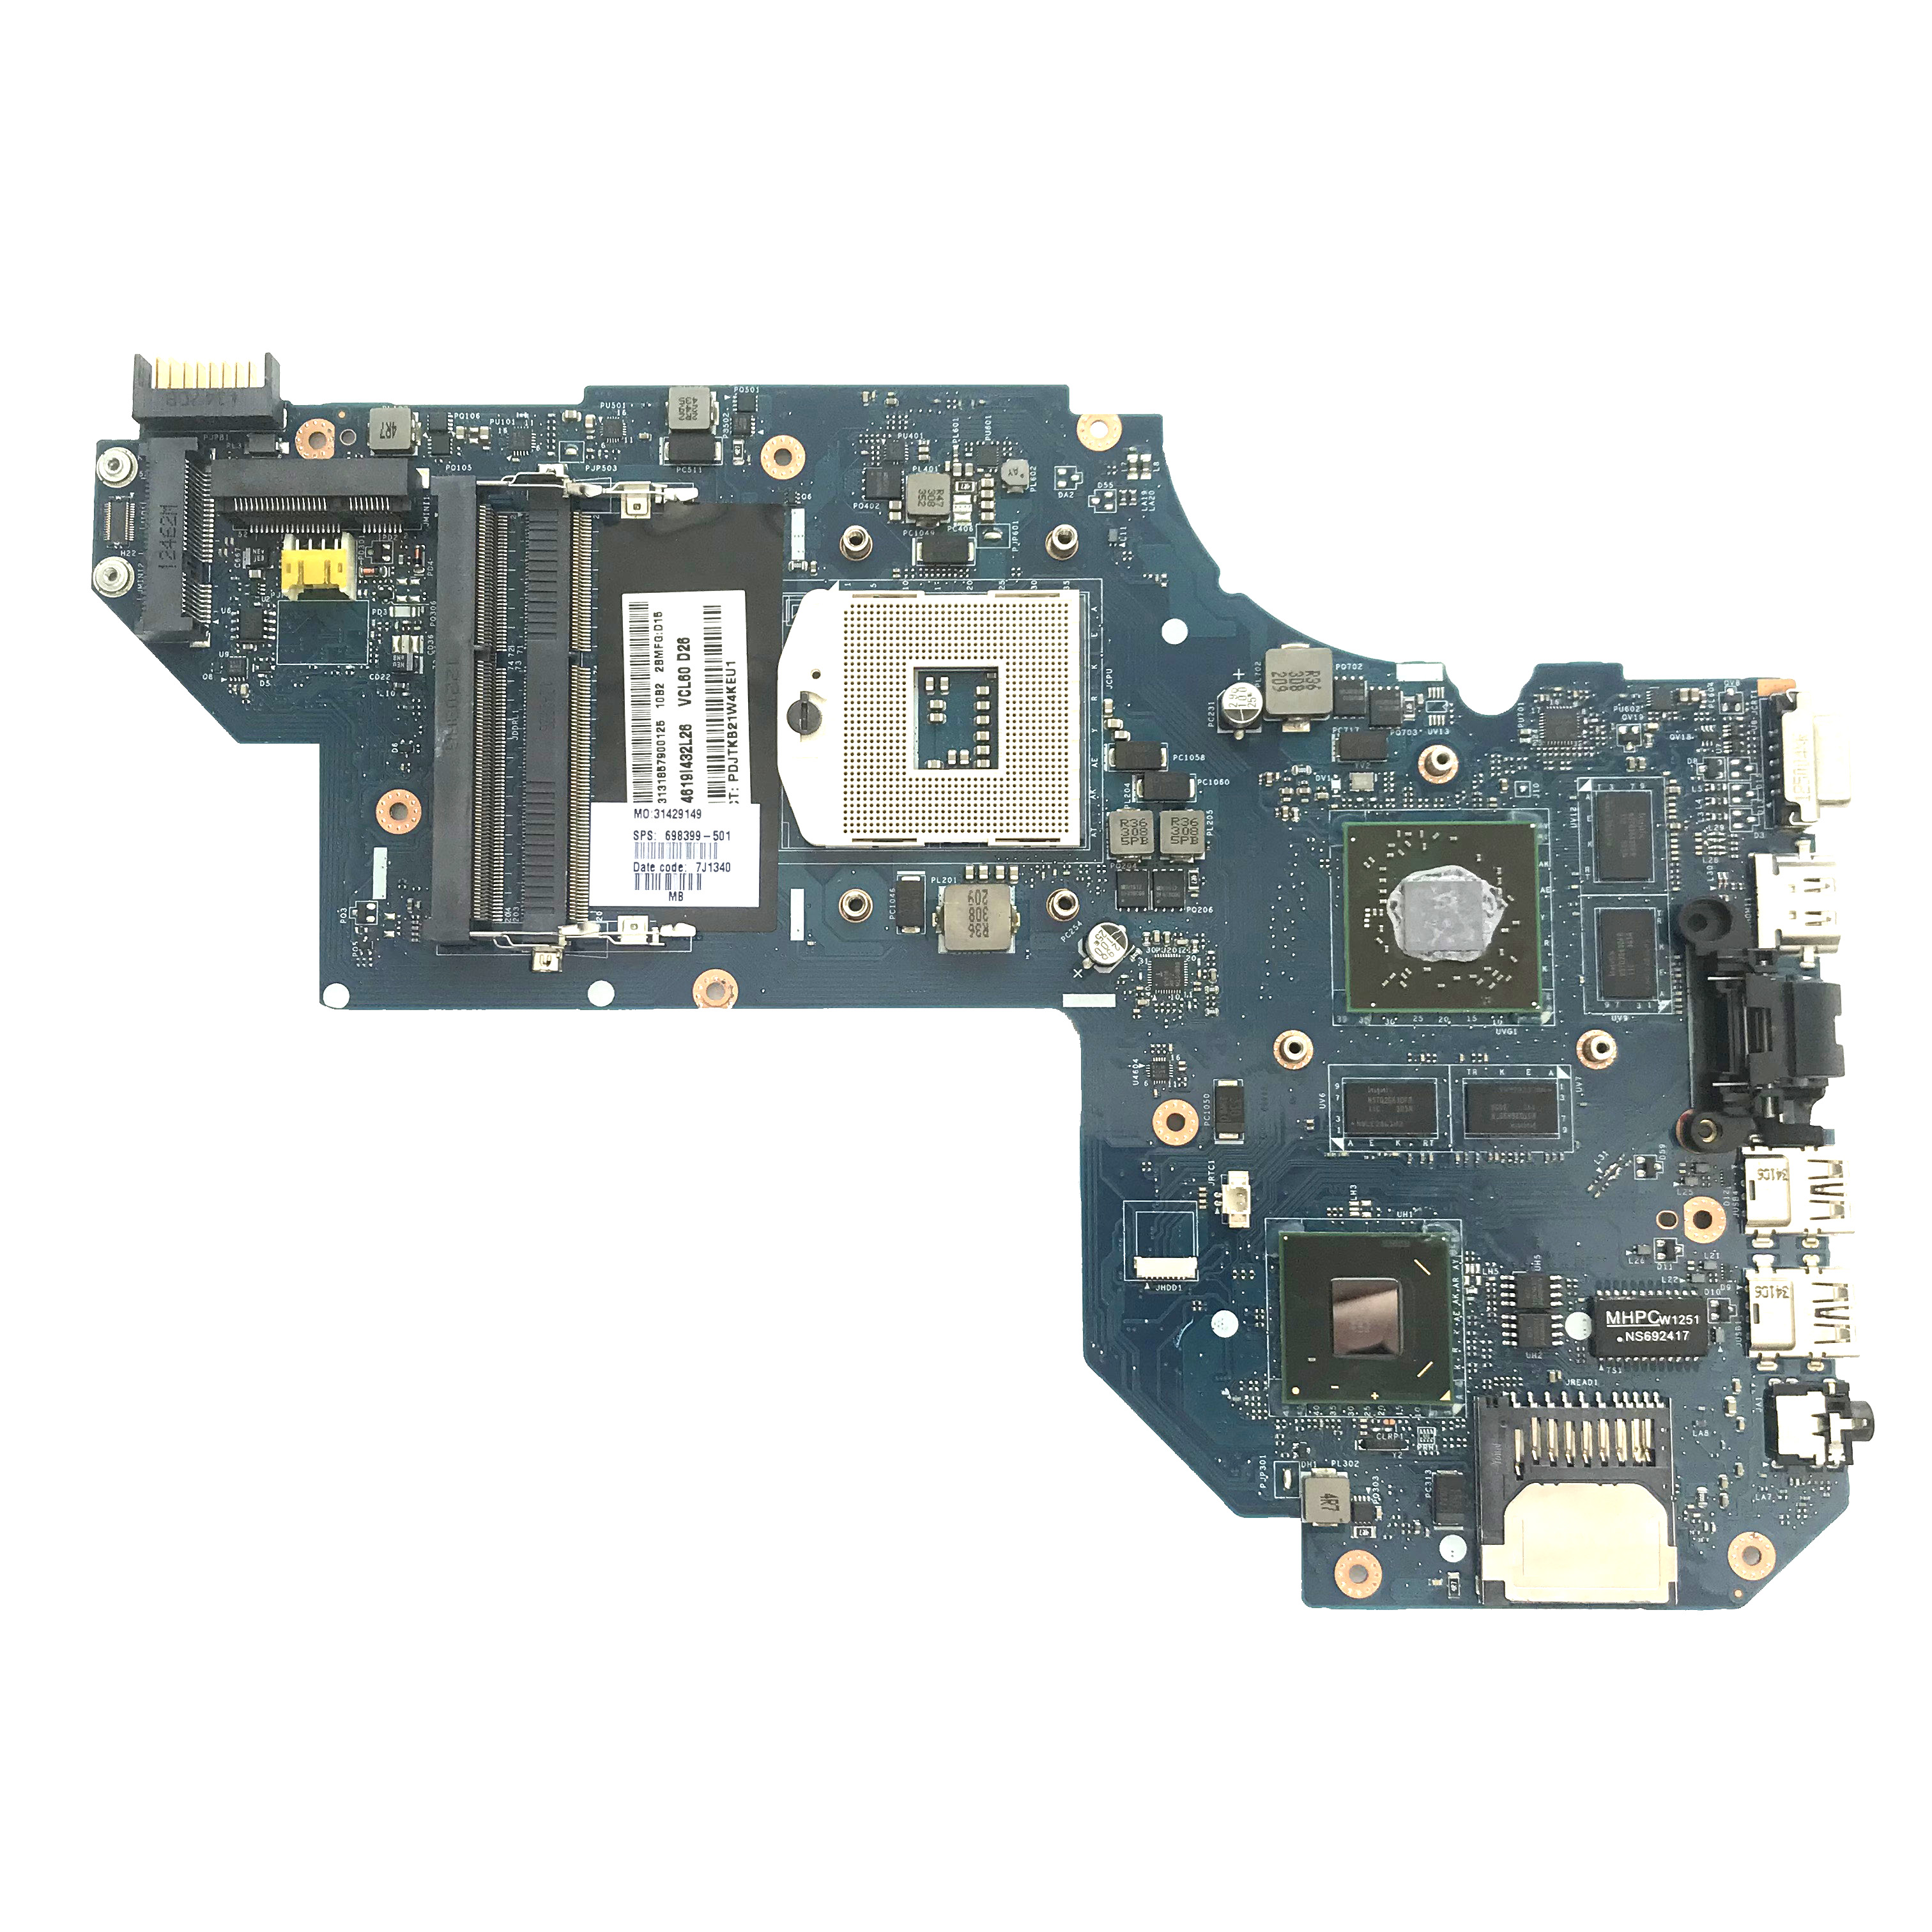 High Quality Laptop Motherboard For Hp Pavilion M6 1000 698399 501 698399 001 Qcl50 La 8711p Hm76 Pga989 Hd7670m 2gb Fully Test Buy M6 1000 Motherboard 698399 501motherboard La 8711p Motherboard Product On Alibaba Com